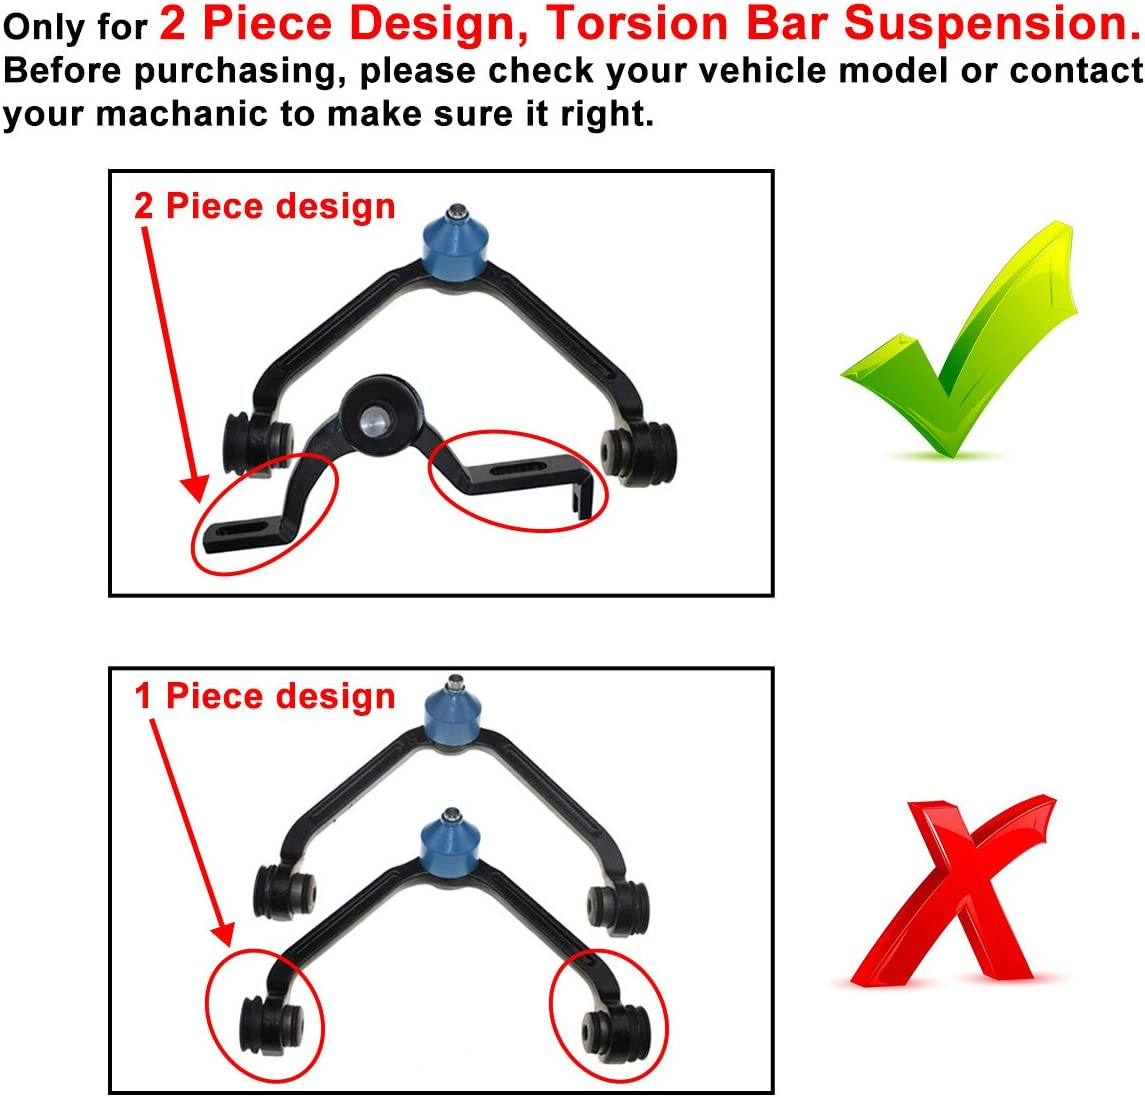 DLZ 2 Pcs Front Upper Control Arm Ball Joint Assembly K8708T K8710T Compatible with Ford Ranger 1998-2003 Ford Explorer 1995-2003 Mazda B2500 1999-2001 Mazda B3000 B4000 1998-2004